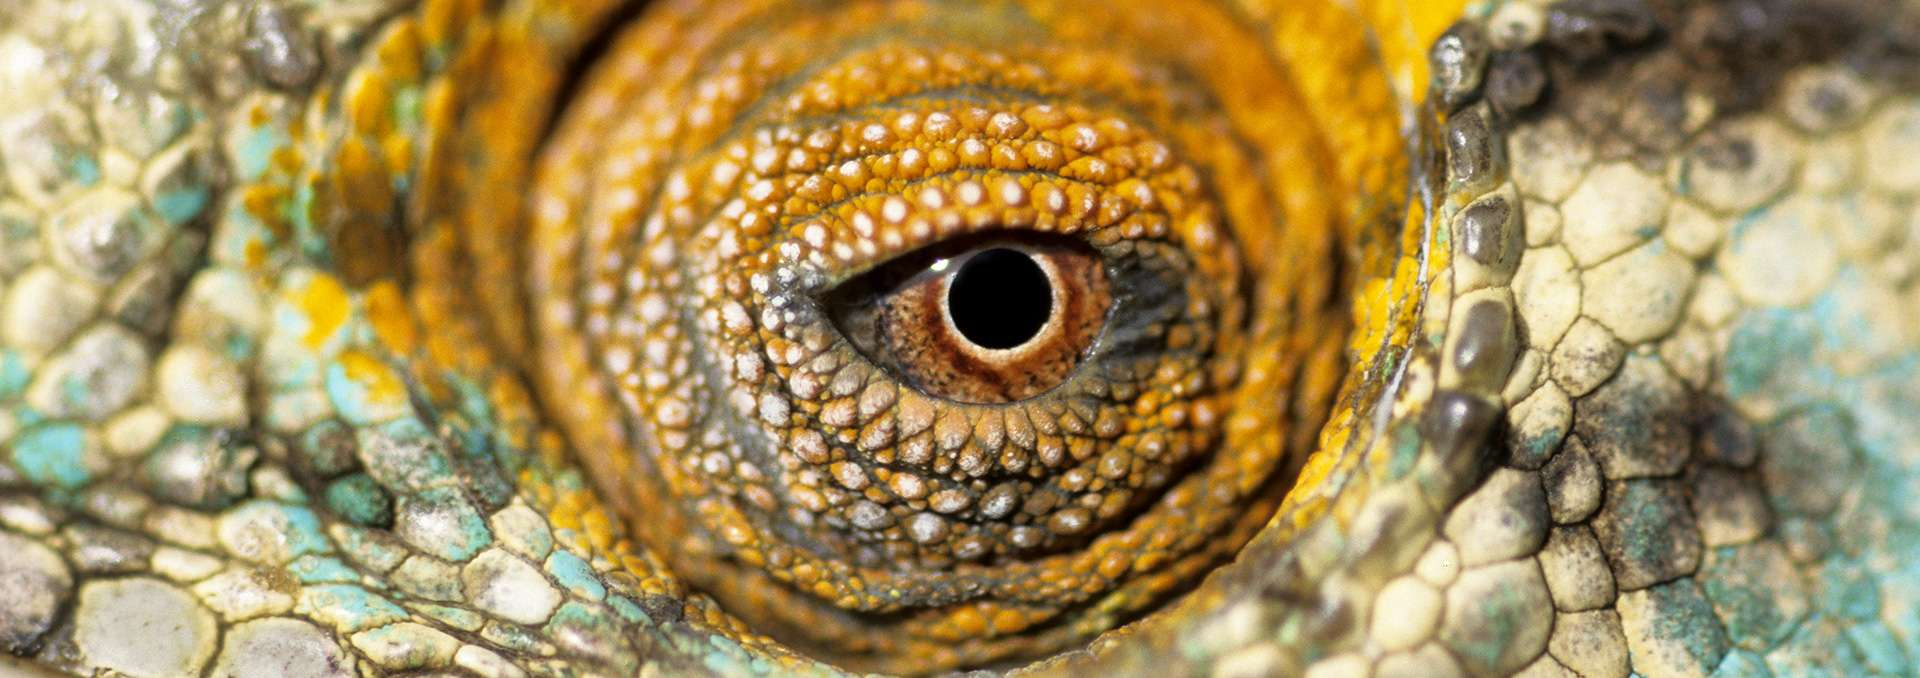 Gilles Martin's photograph of chameleon from Madagascar